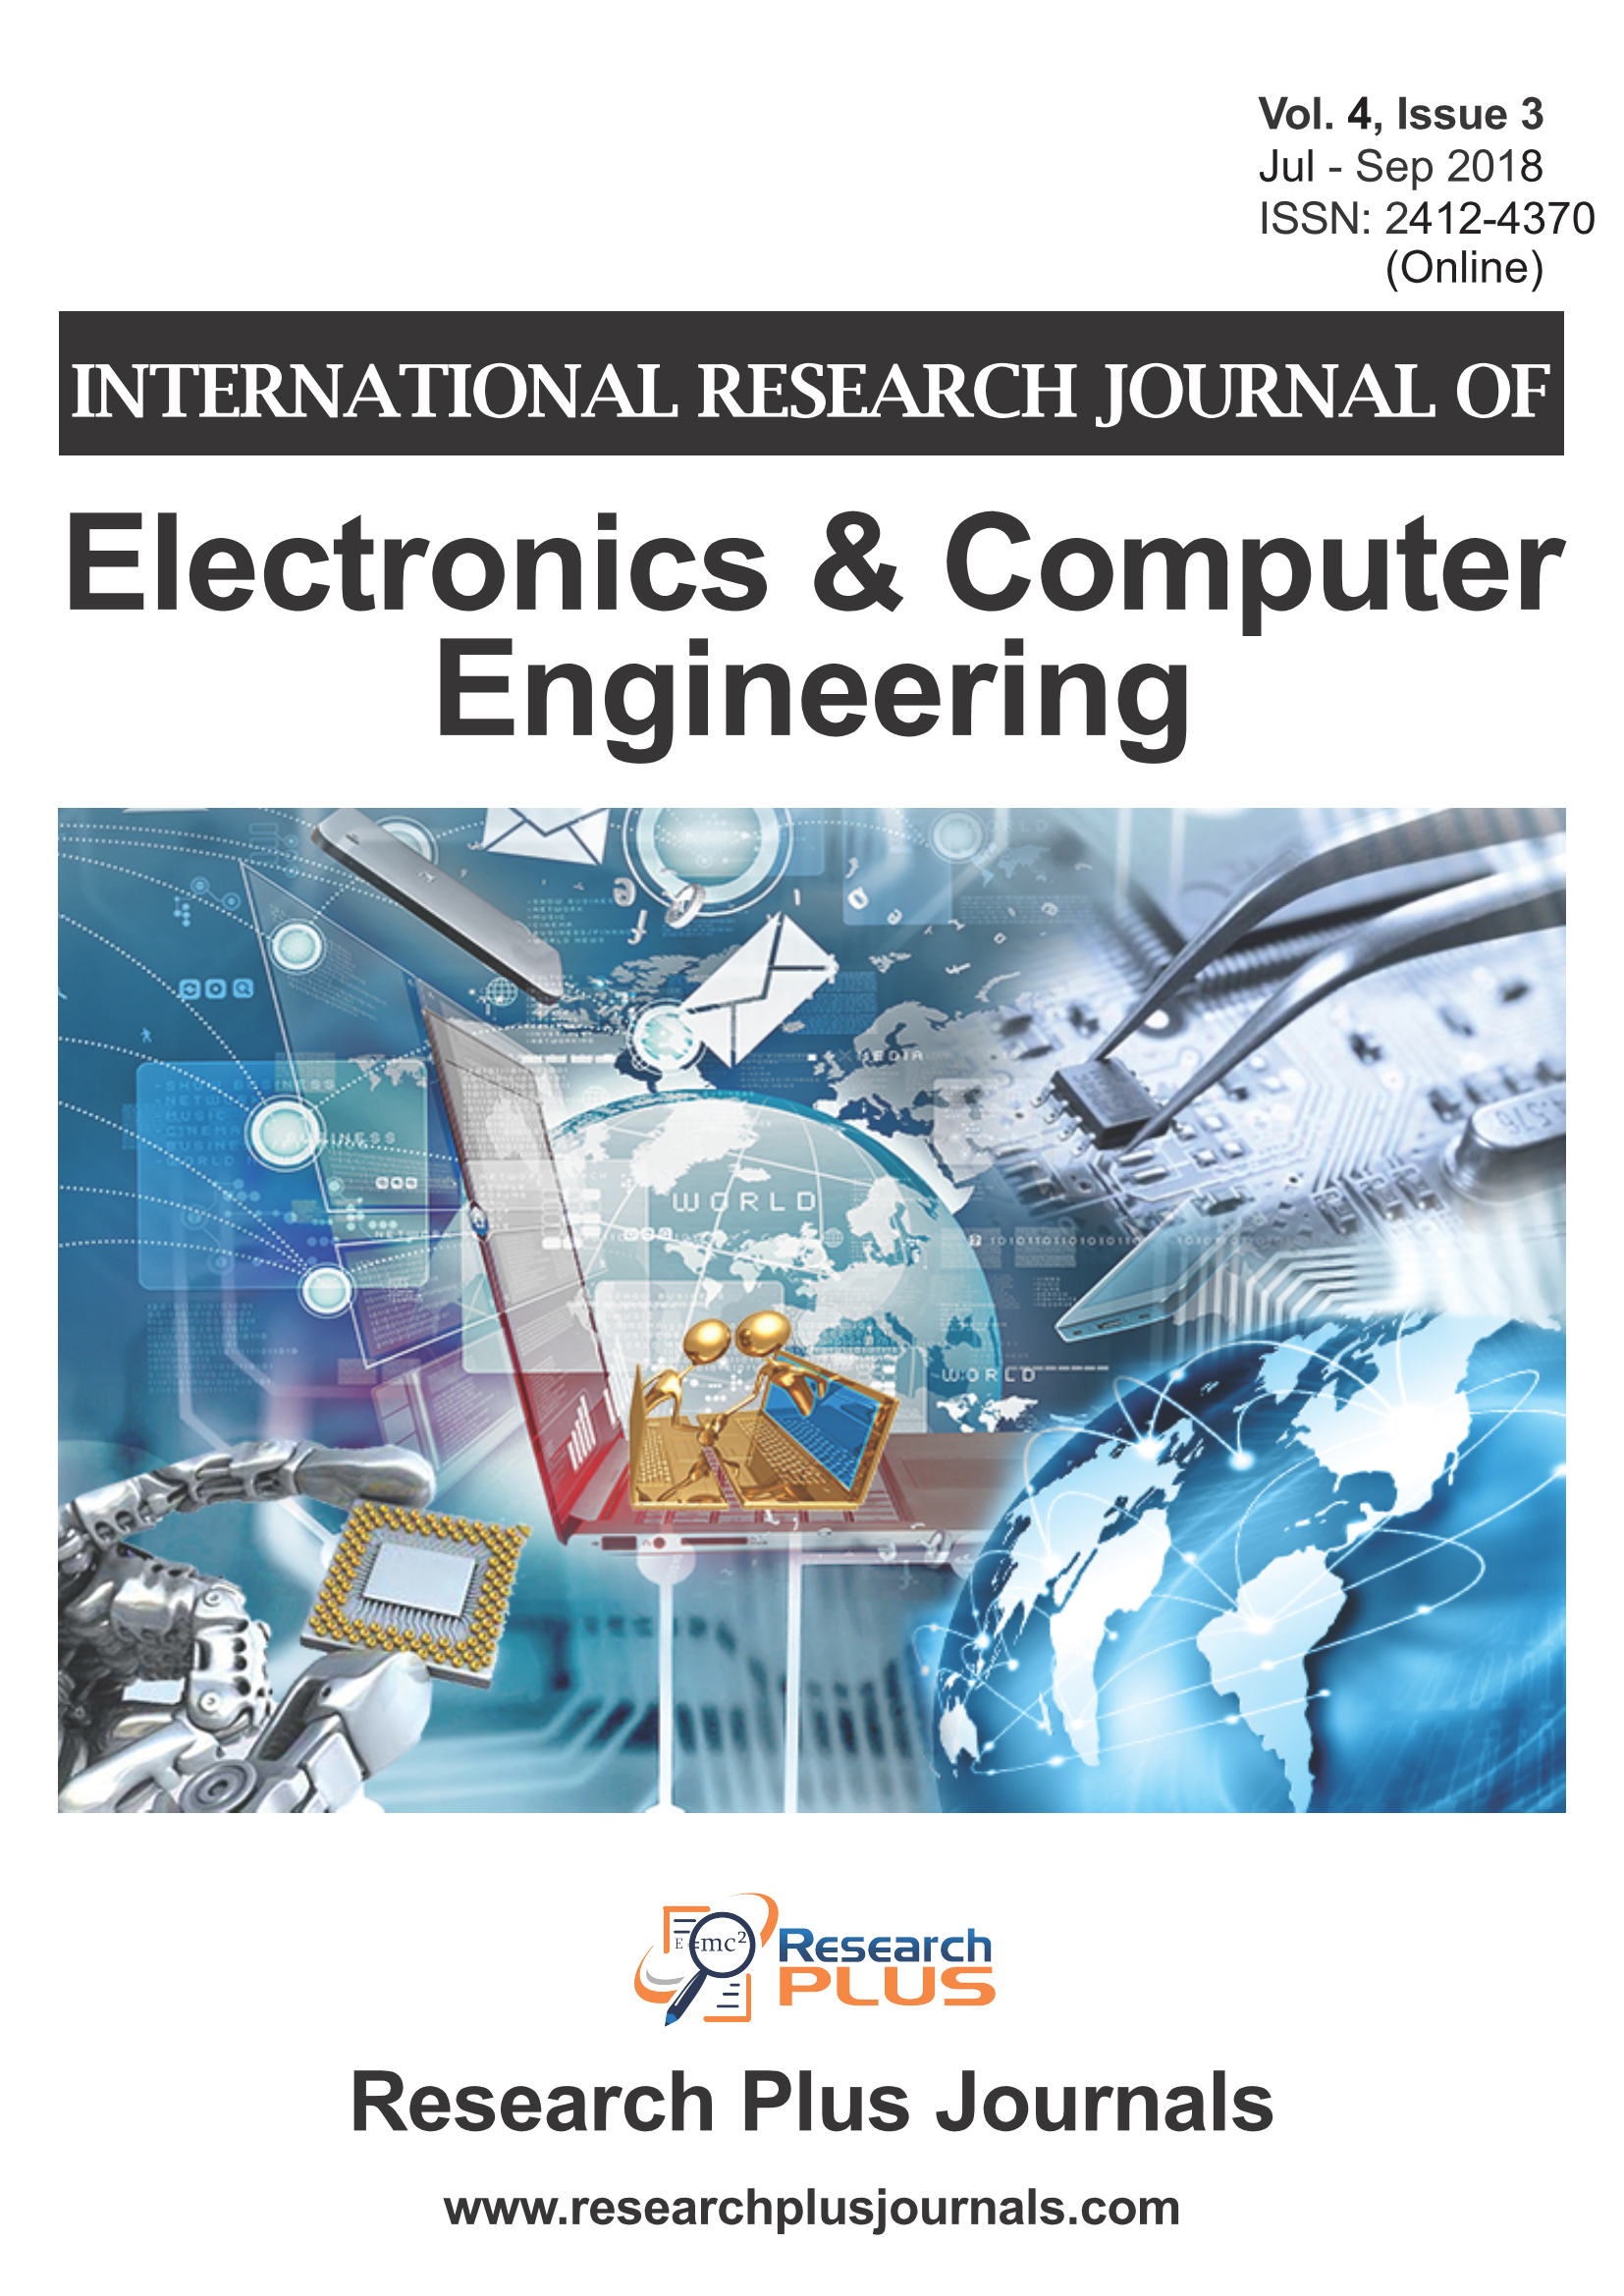 Volume 4, Issue 3, International Research Journal of Electronics & Computer Engineering (IRJECE) (Online ISSN : 2412-4370)